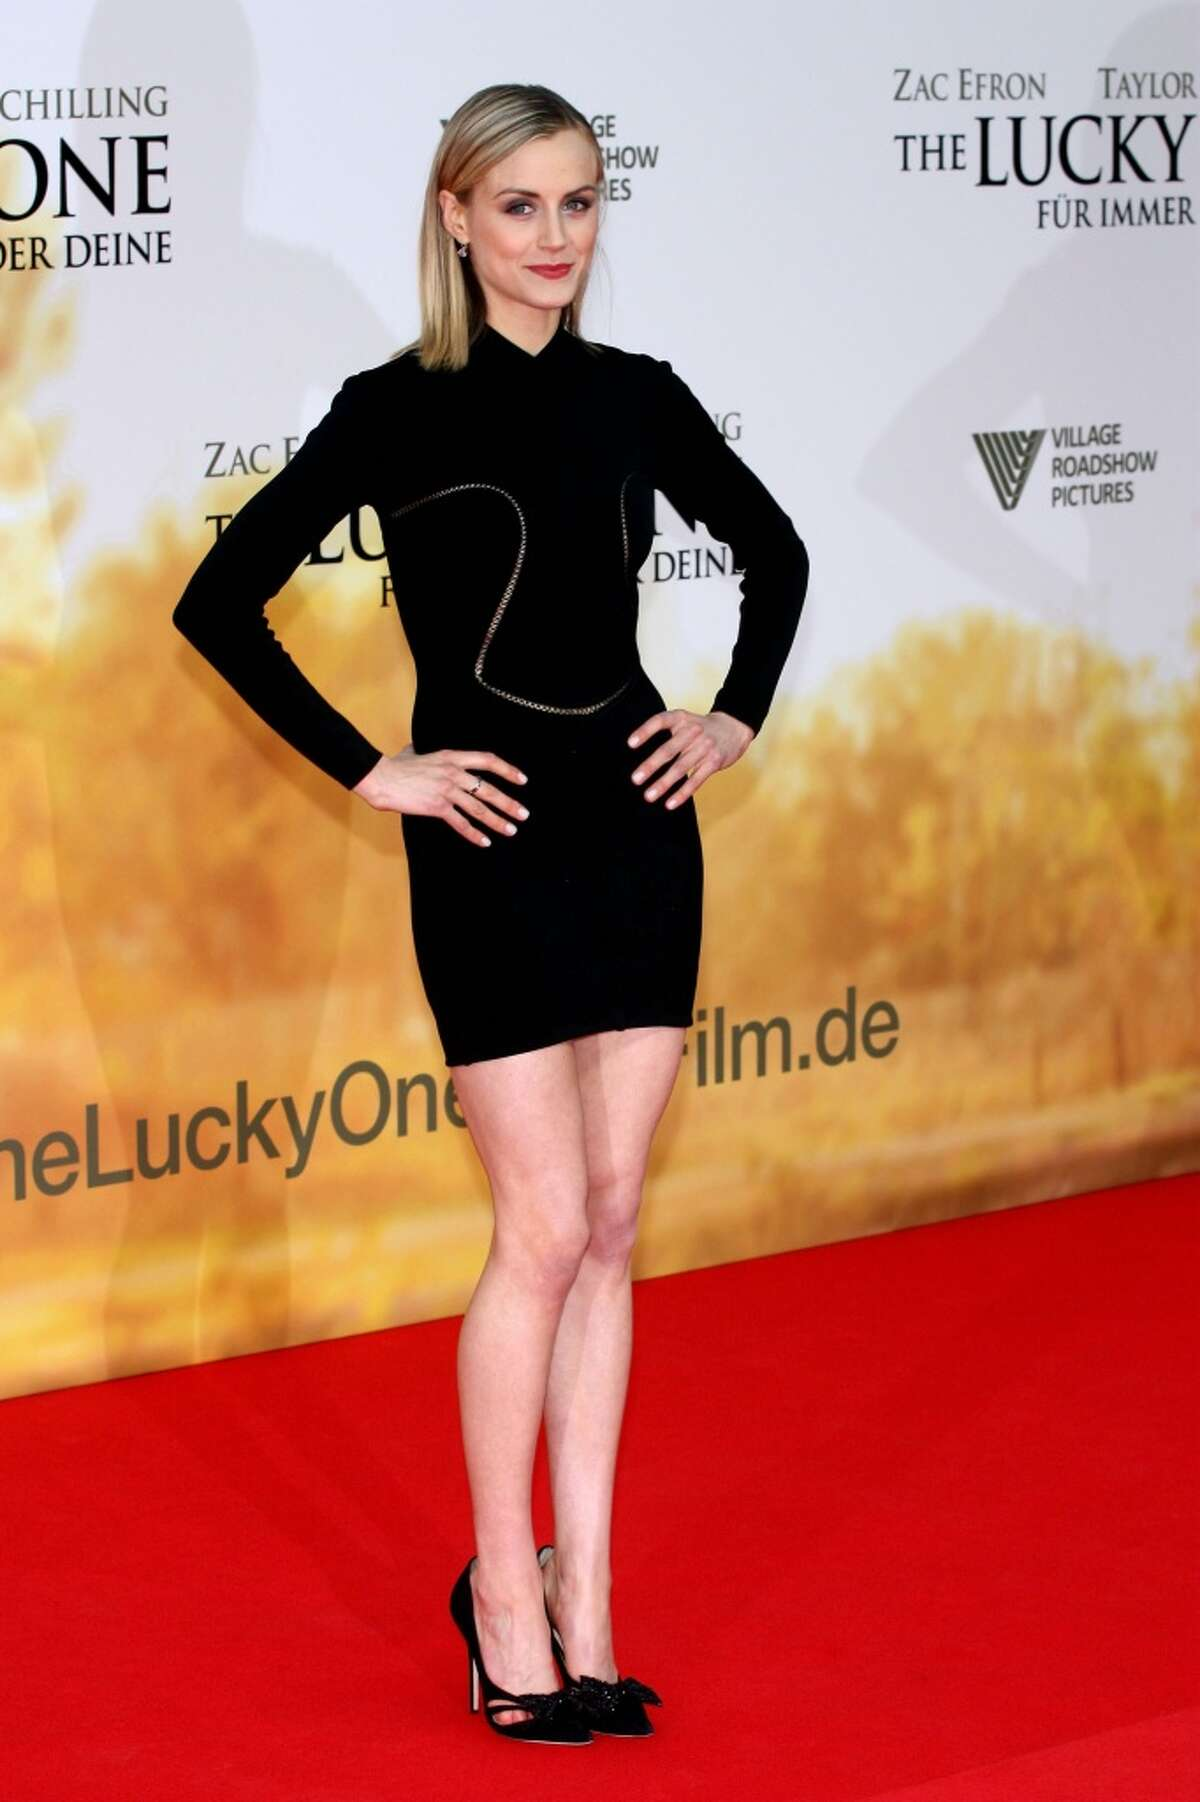 Where do you know Taylor Schilling from? She was in the 2012 movie ''The Lucky One,'' for which she's pictured at a premiere.